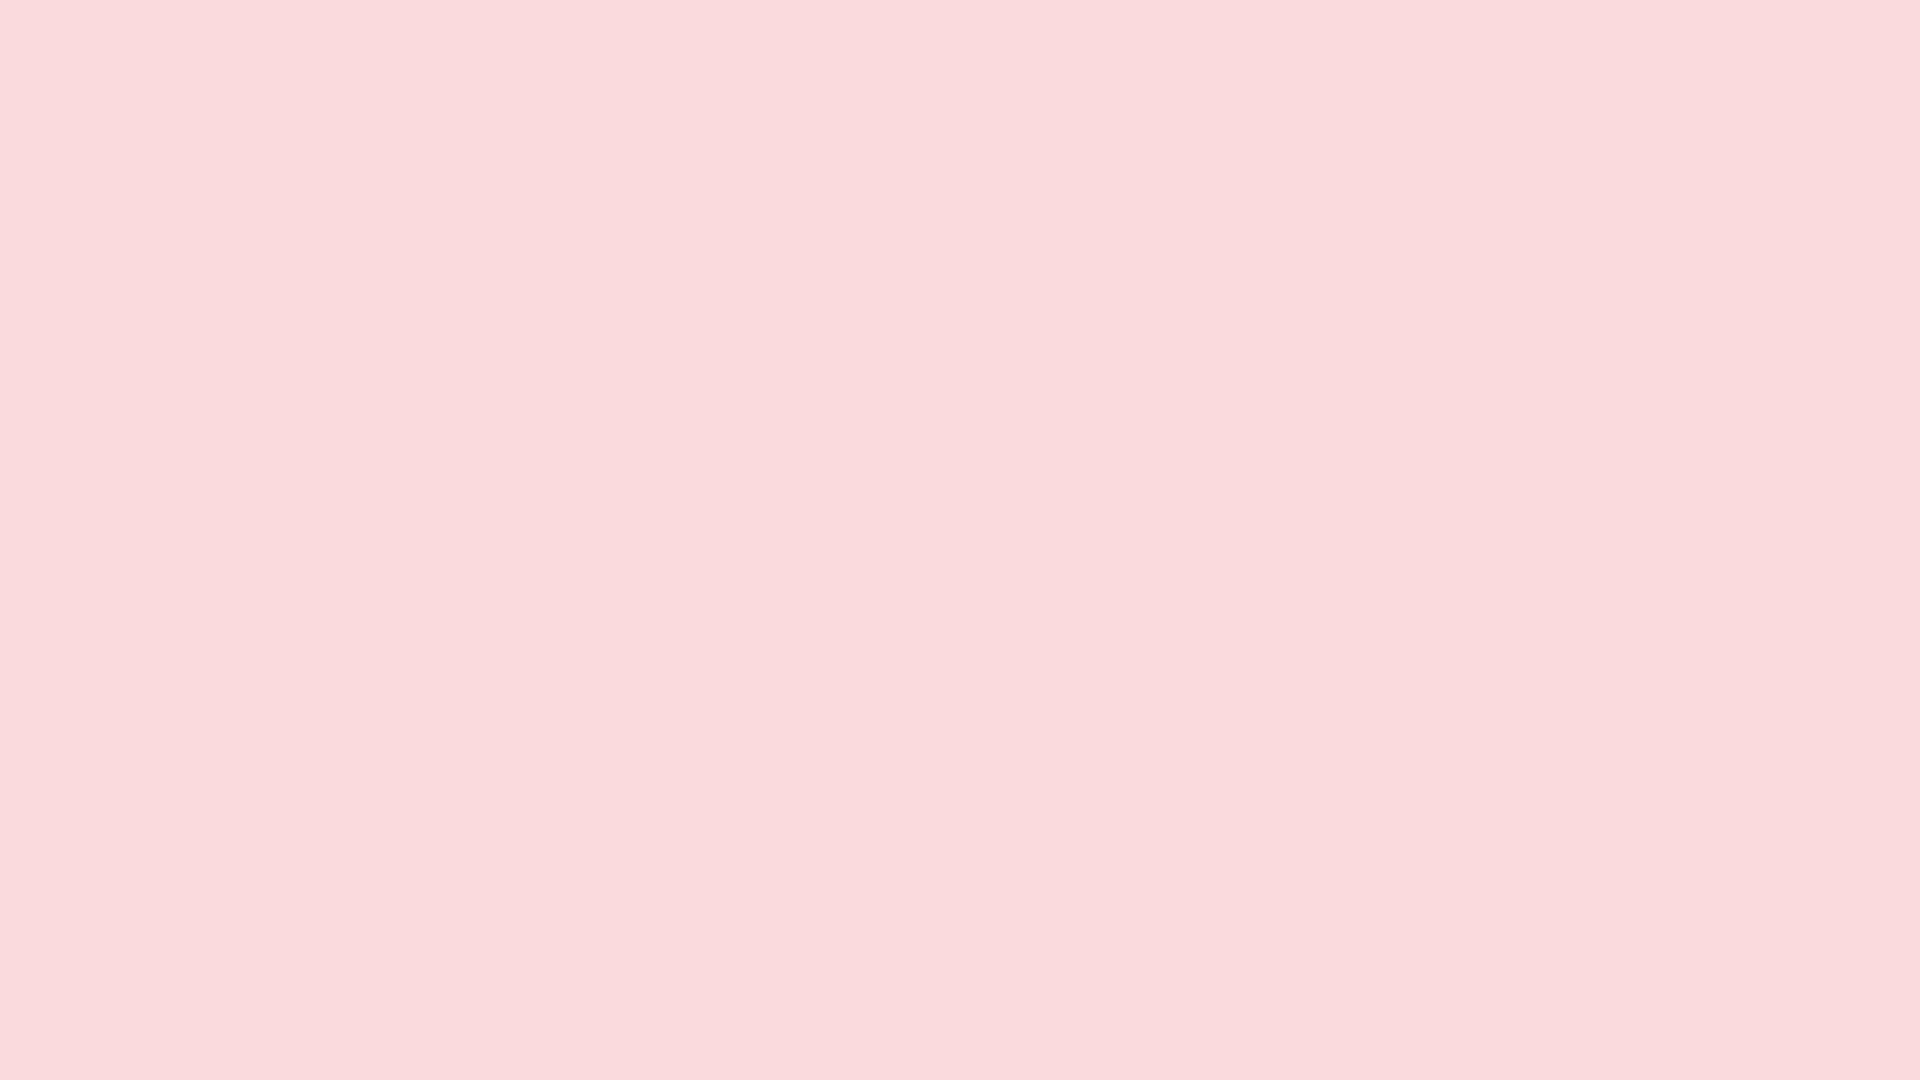 1920x1080 Pale Pink Solid Color Background